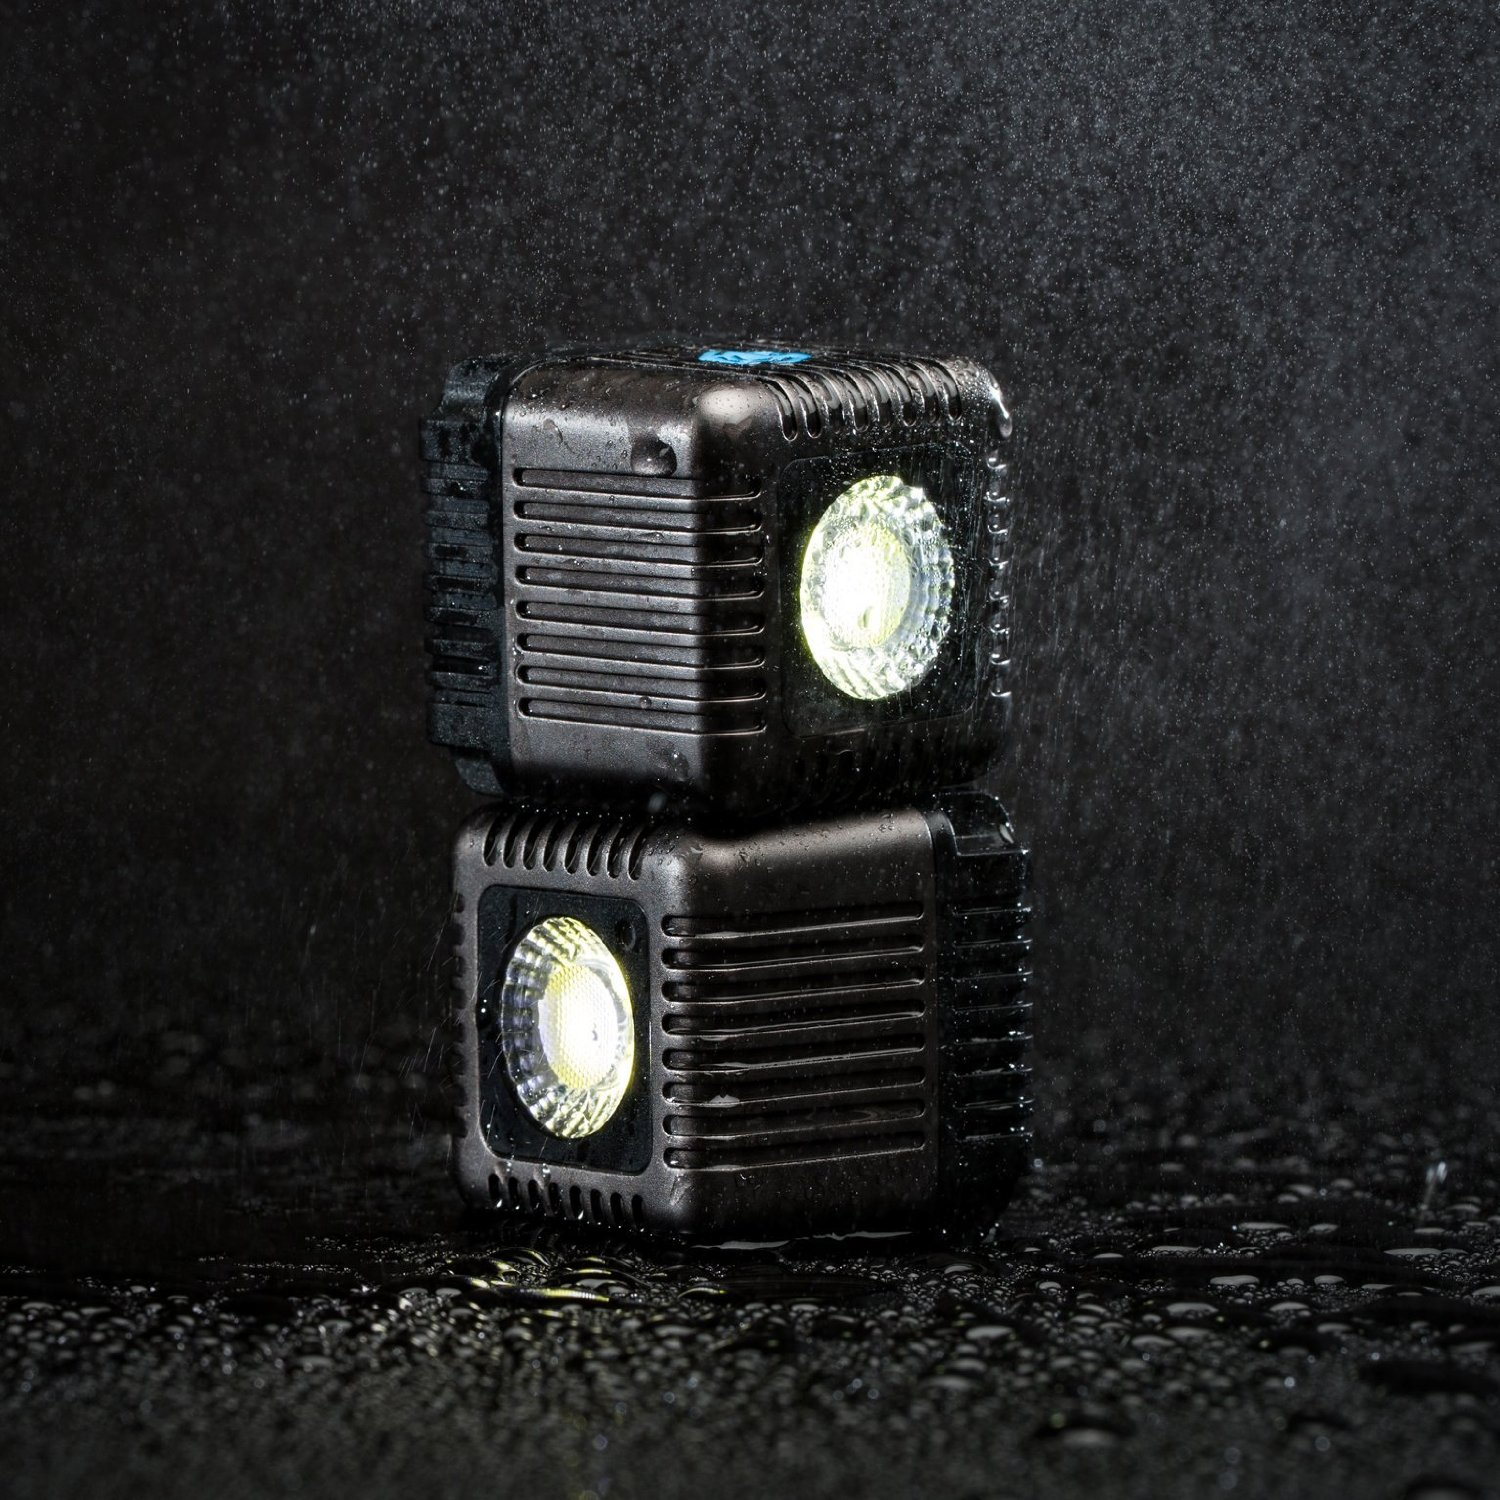 waterproof 1500 lumen lume cube flashlight. Black Bedroom Furniture Sets. Home Design Ideas